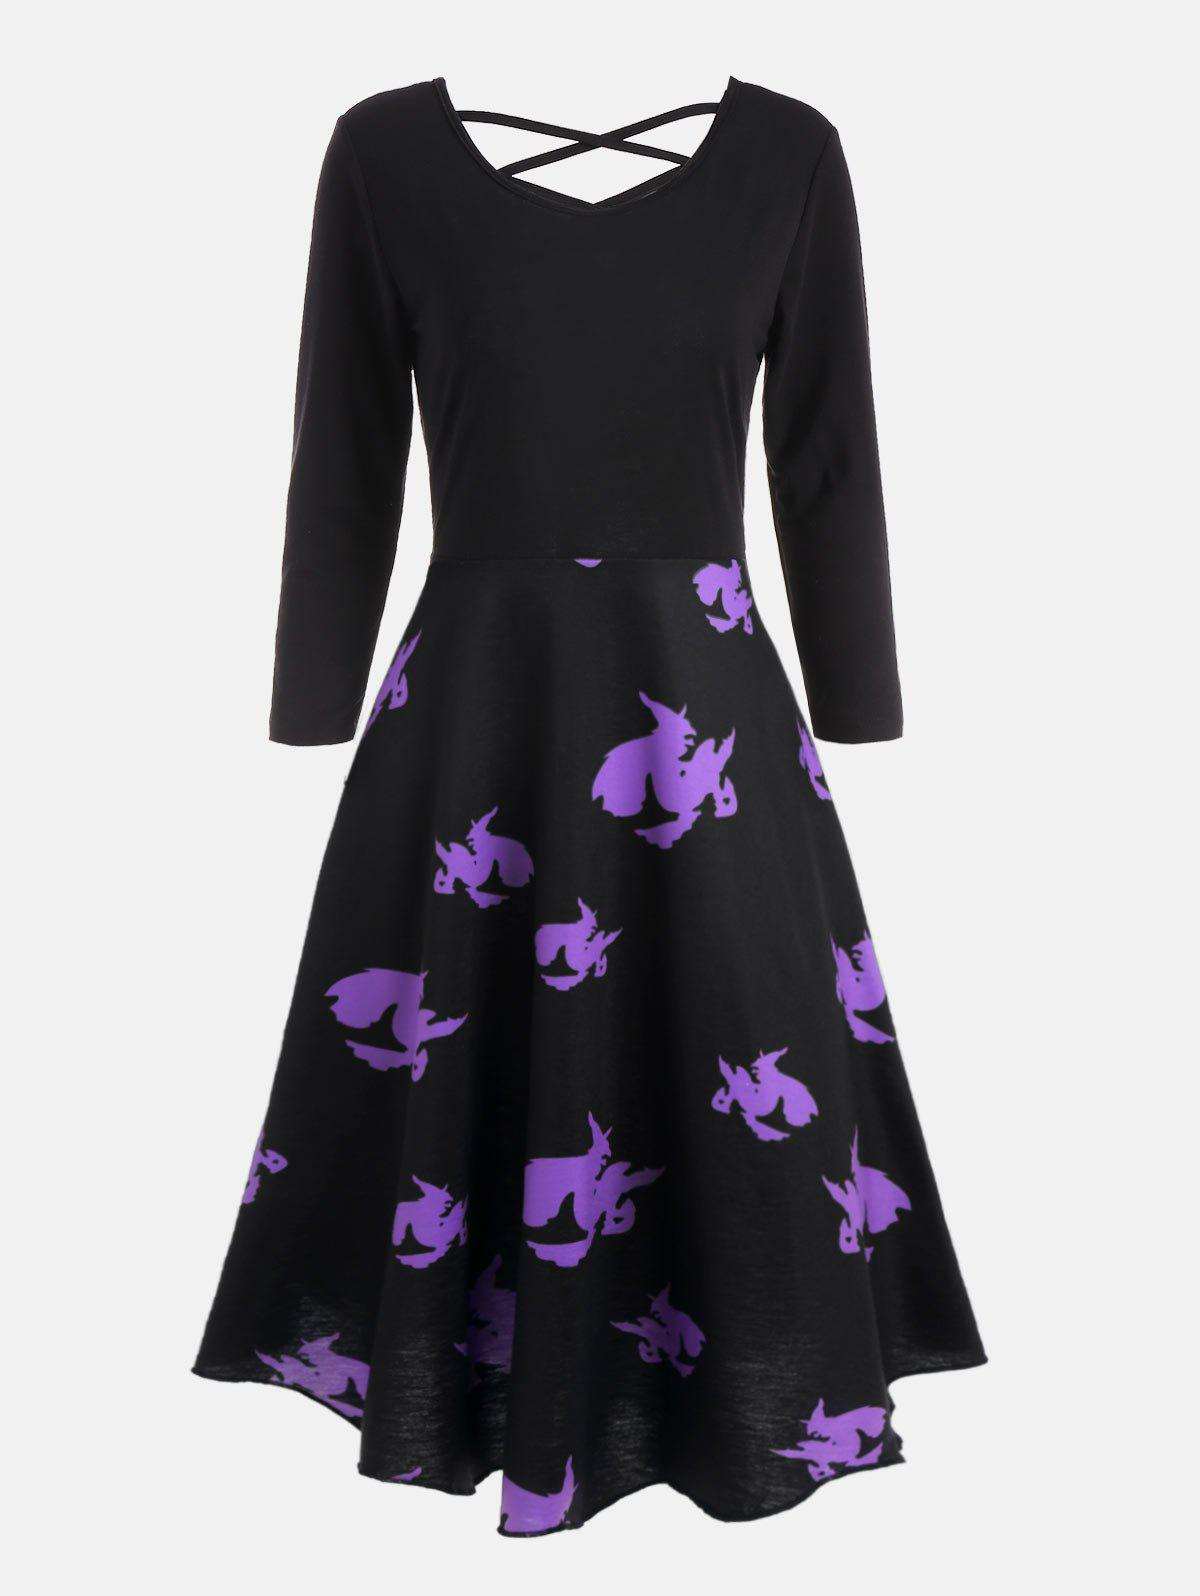 61 Off Halloween Witches Print Cross Back Flare Dress